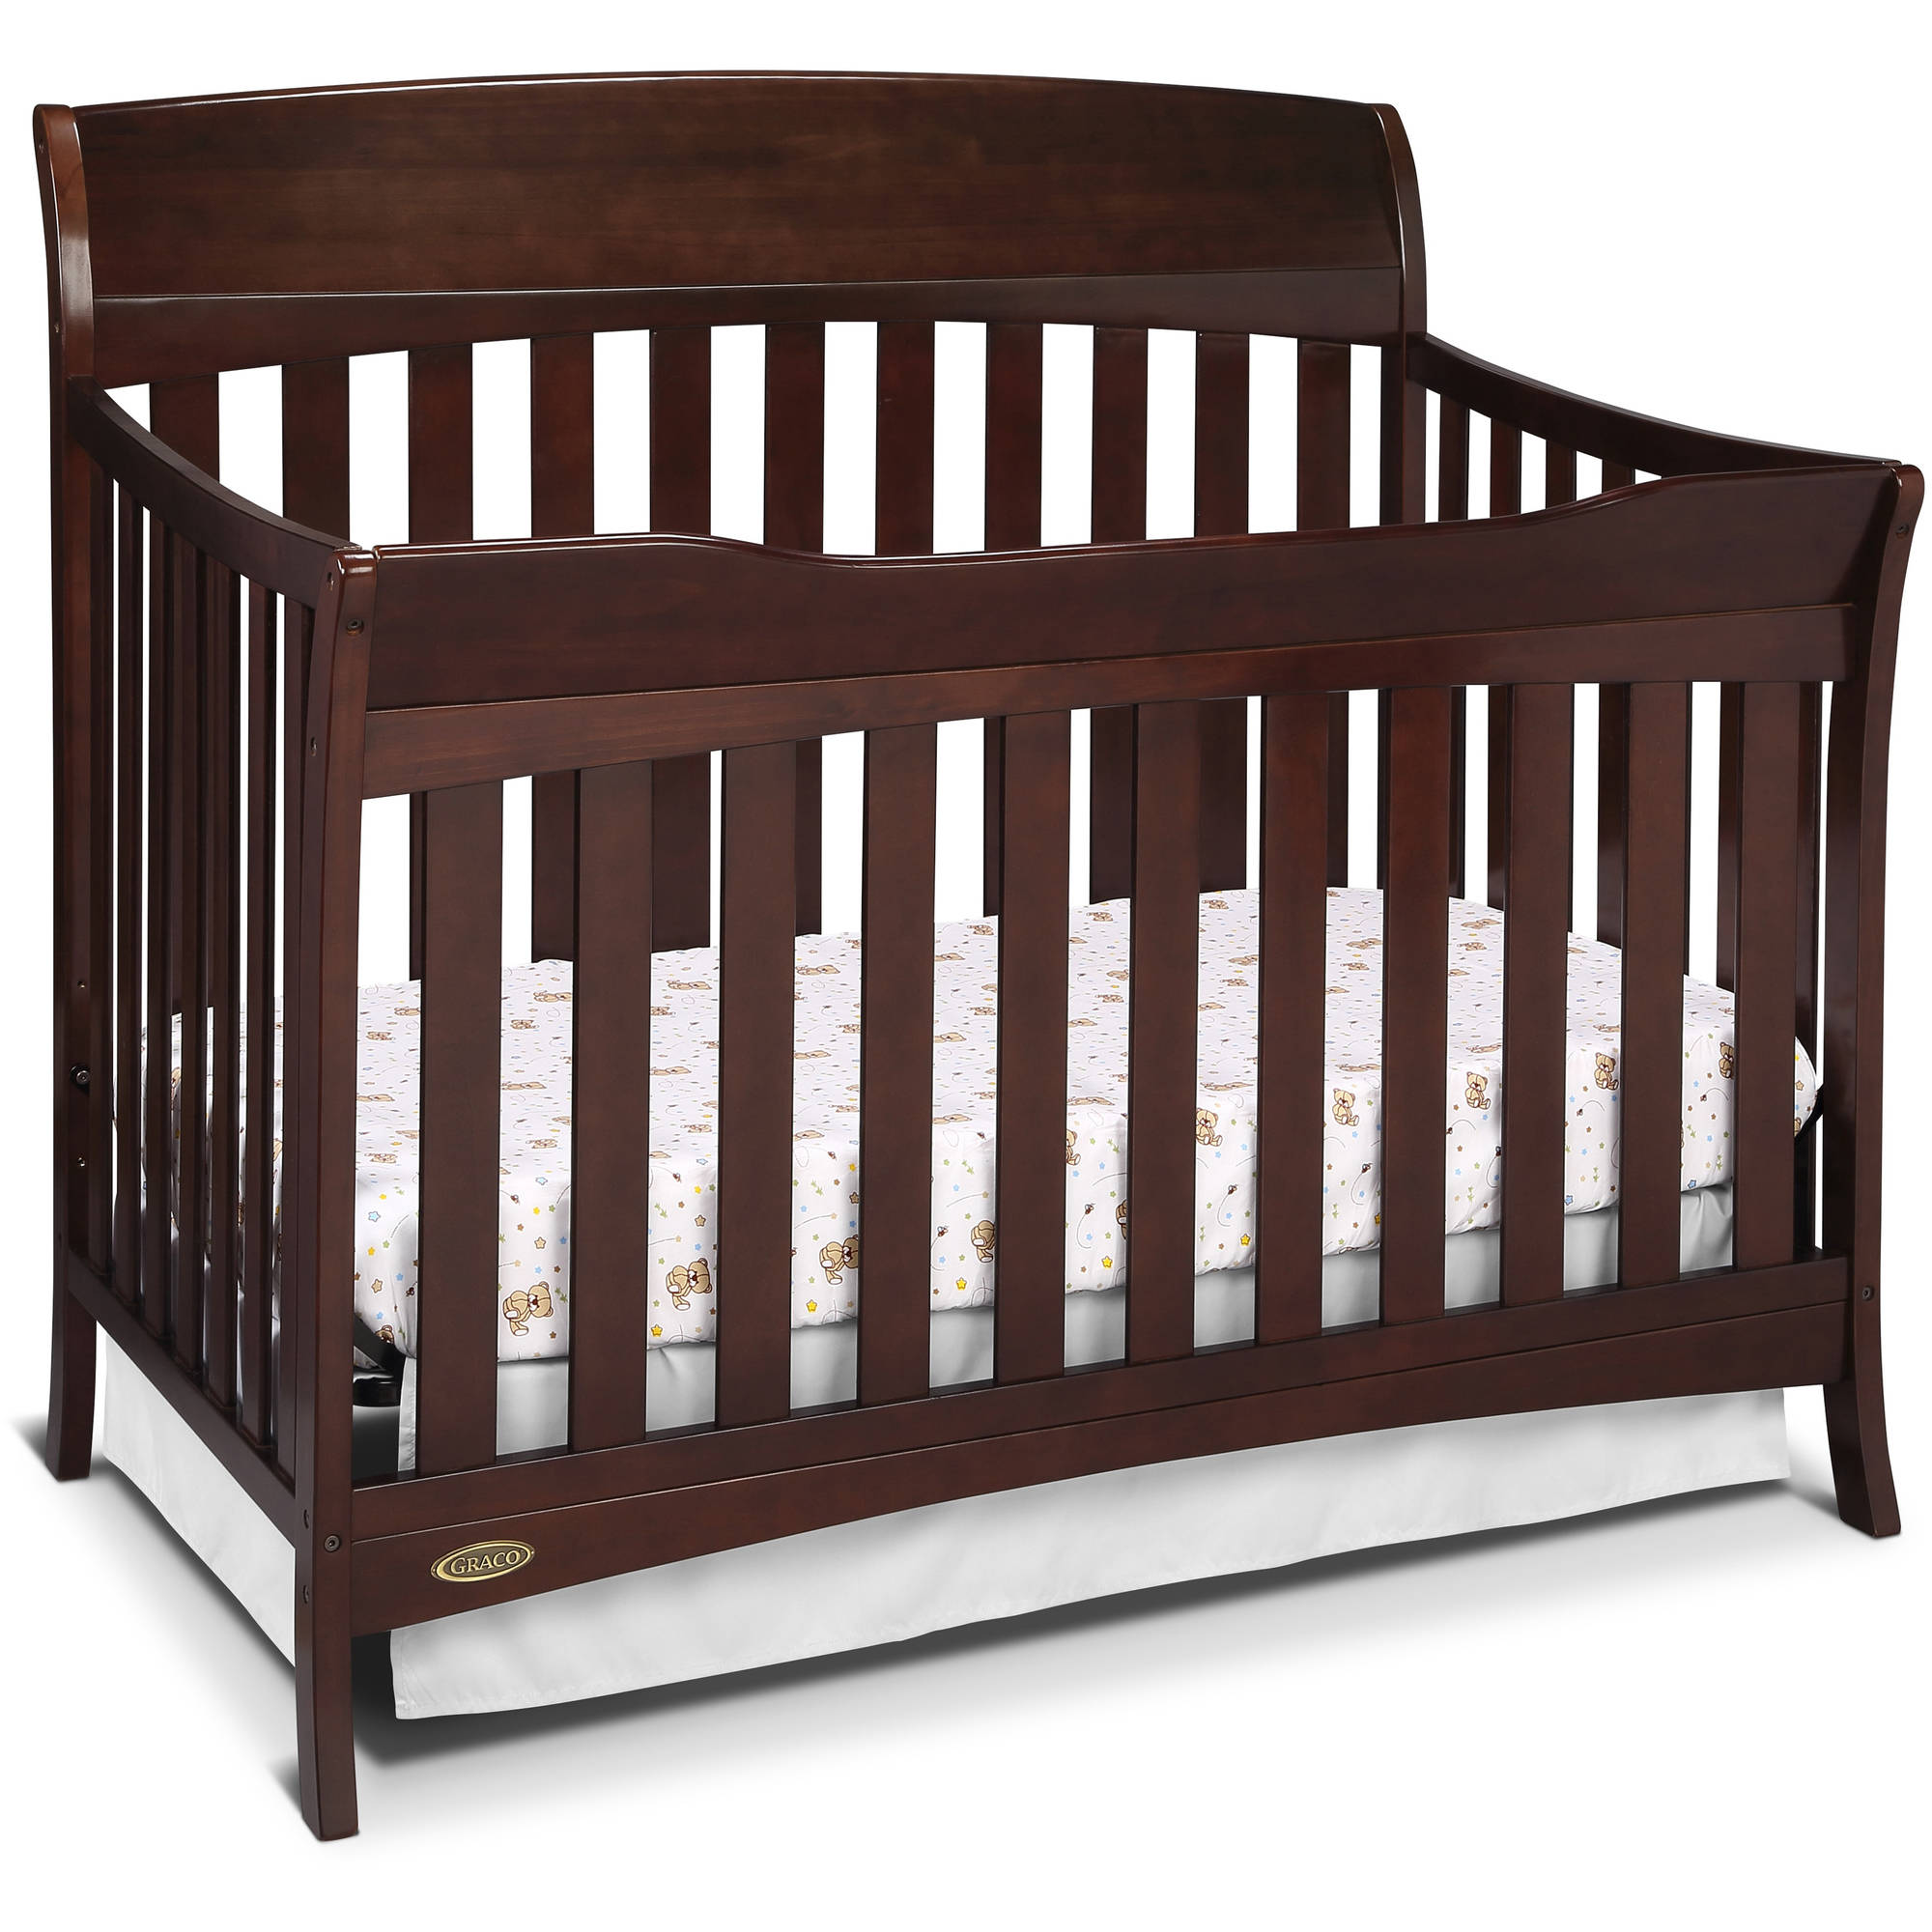 Graco Lennon 4 in 1 Convertible Crib Espresso